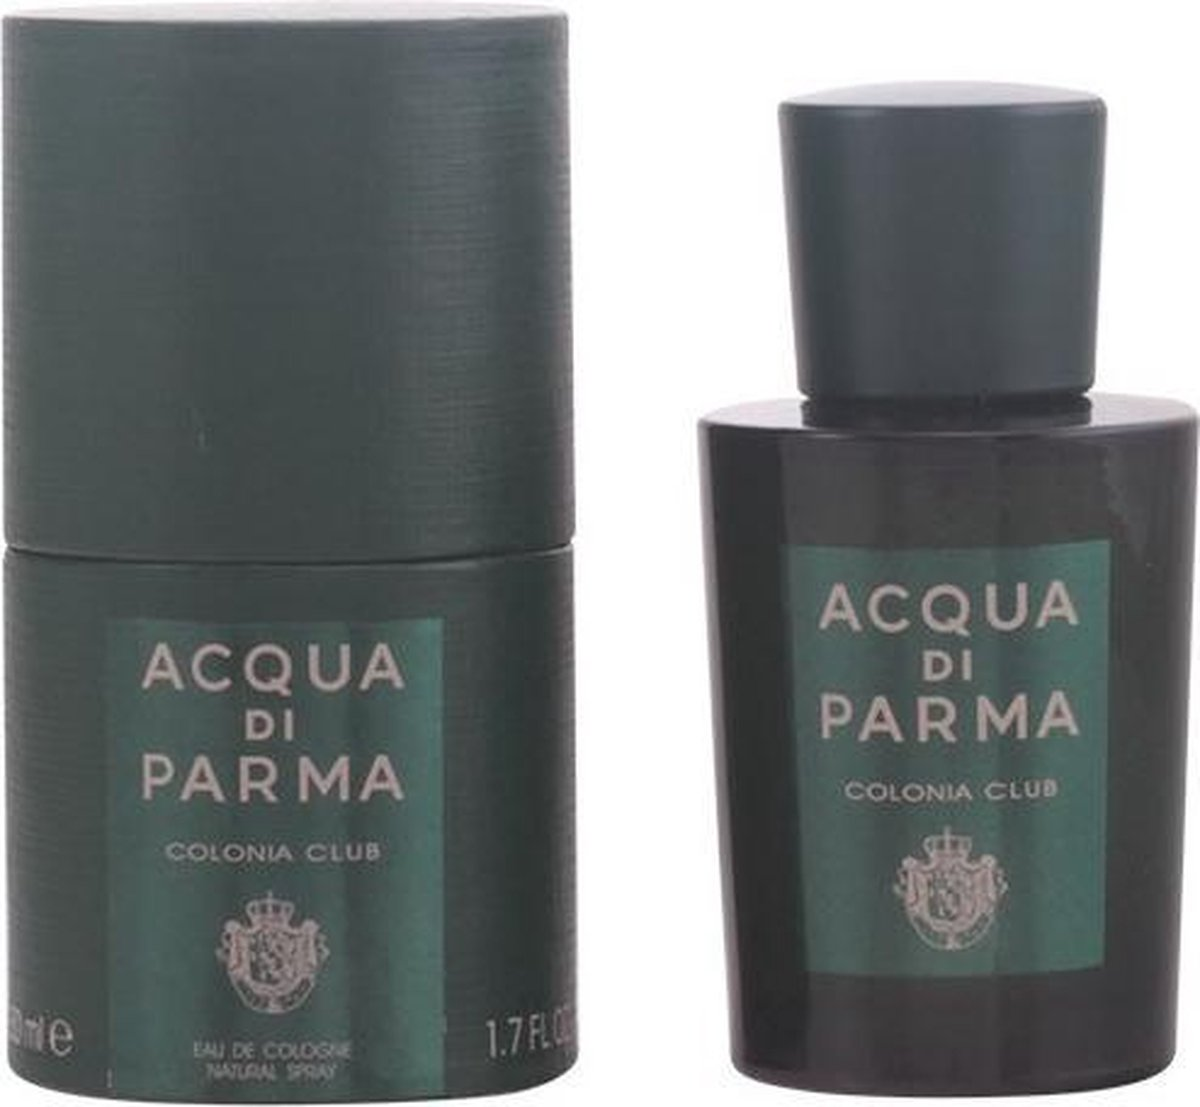 MULTI BUNDEL 2 stuks - Acqua Di Parma - COLONIA CLUB - eau de cologne - spray 50 ml